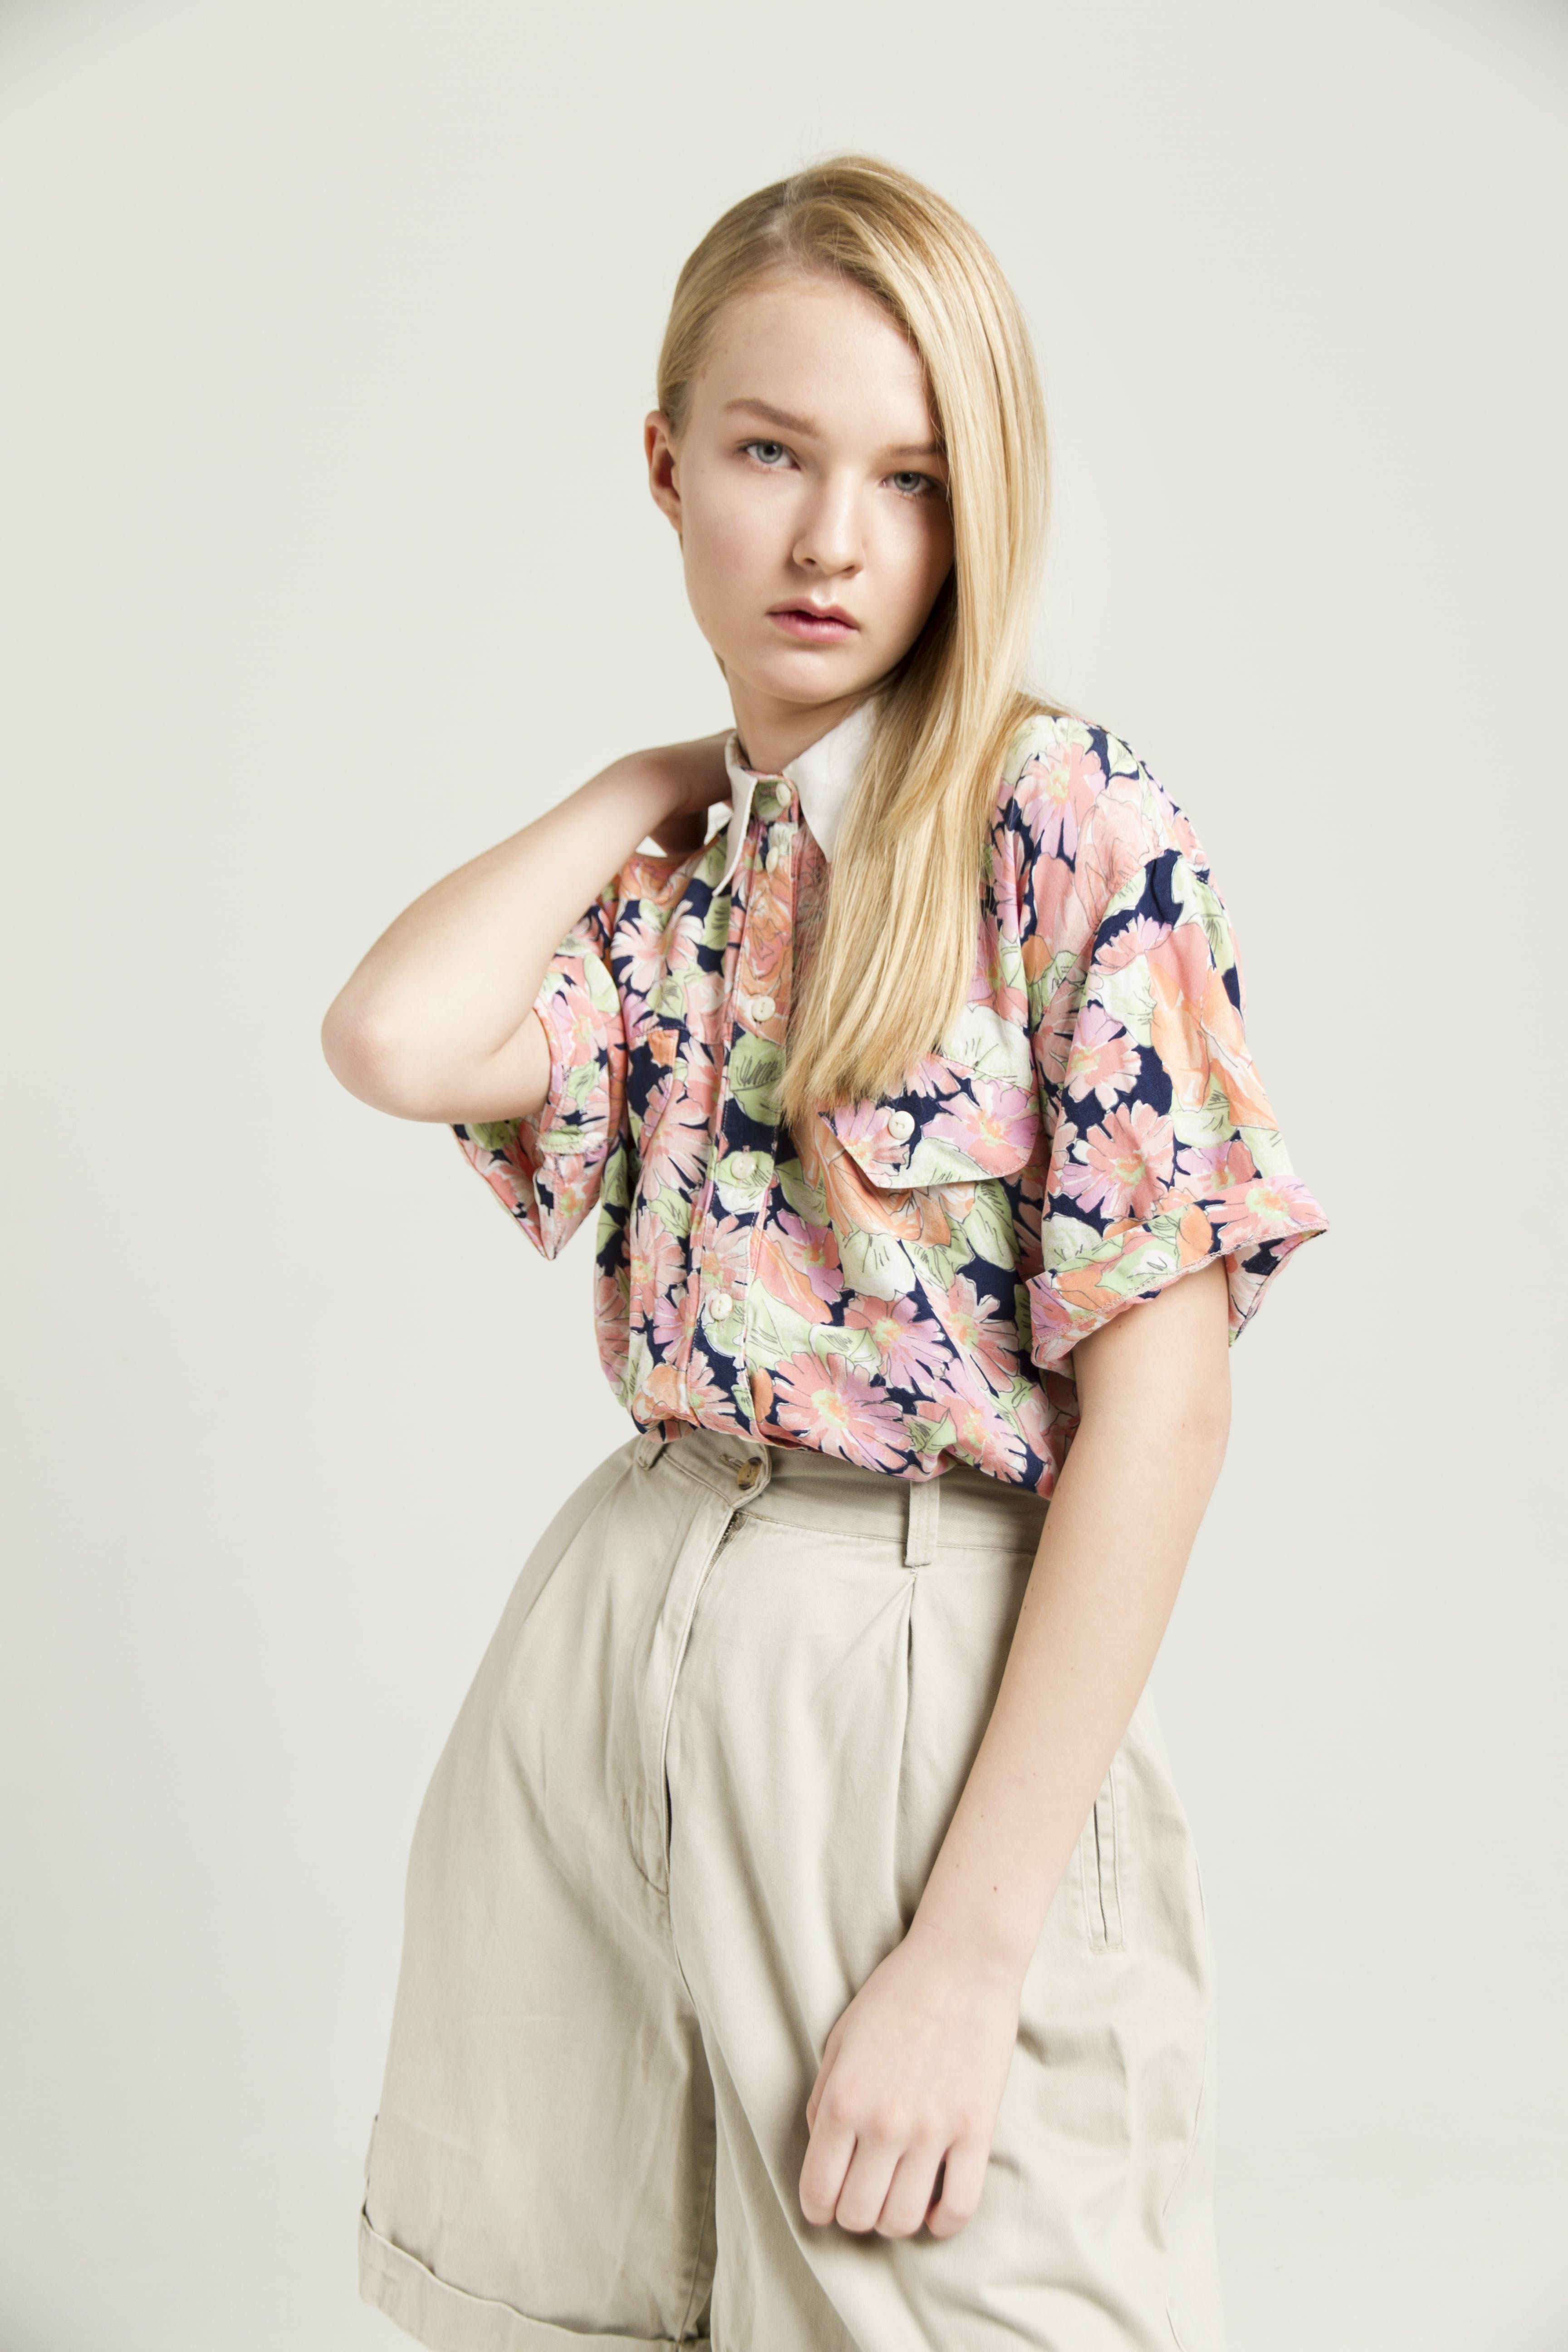 Photo of Woman in Floral Shirt and Beige Shorts Posing